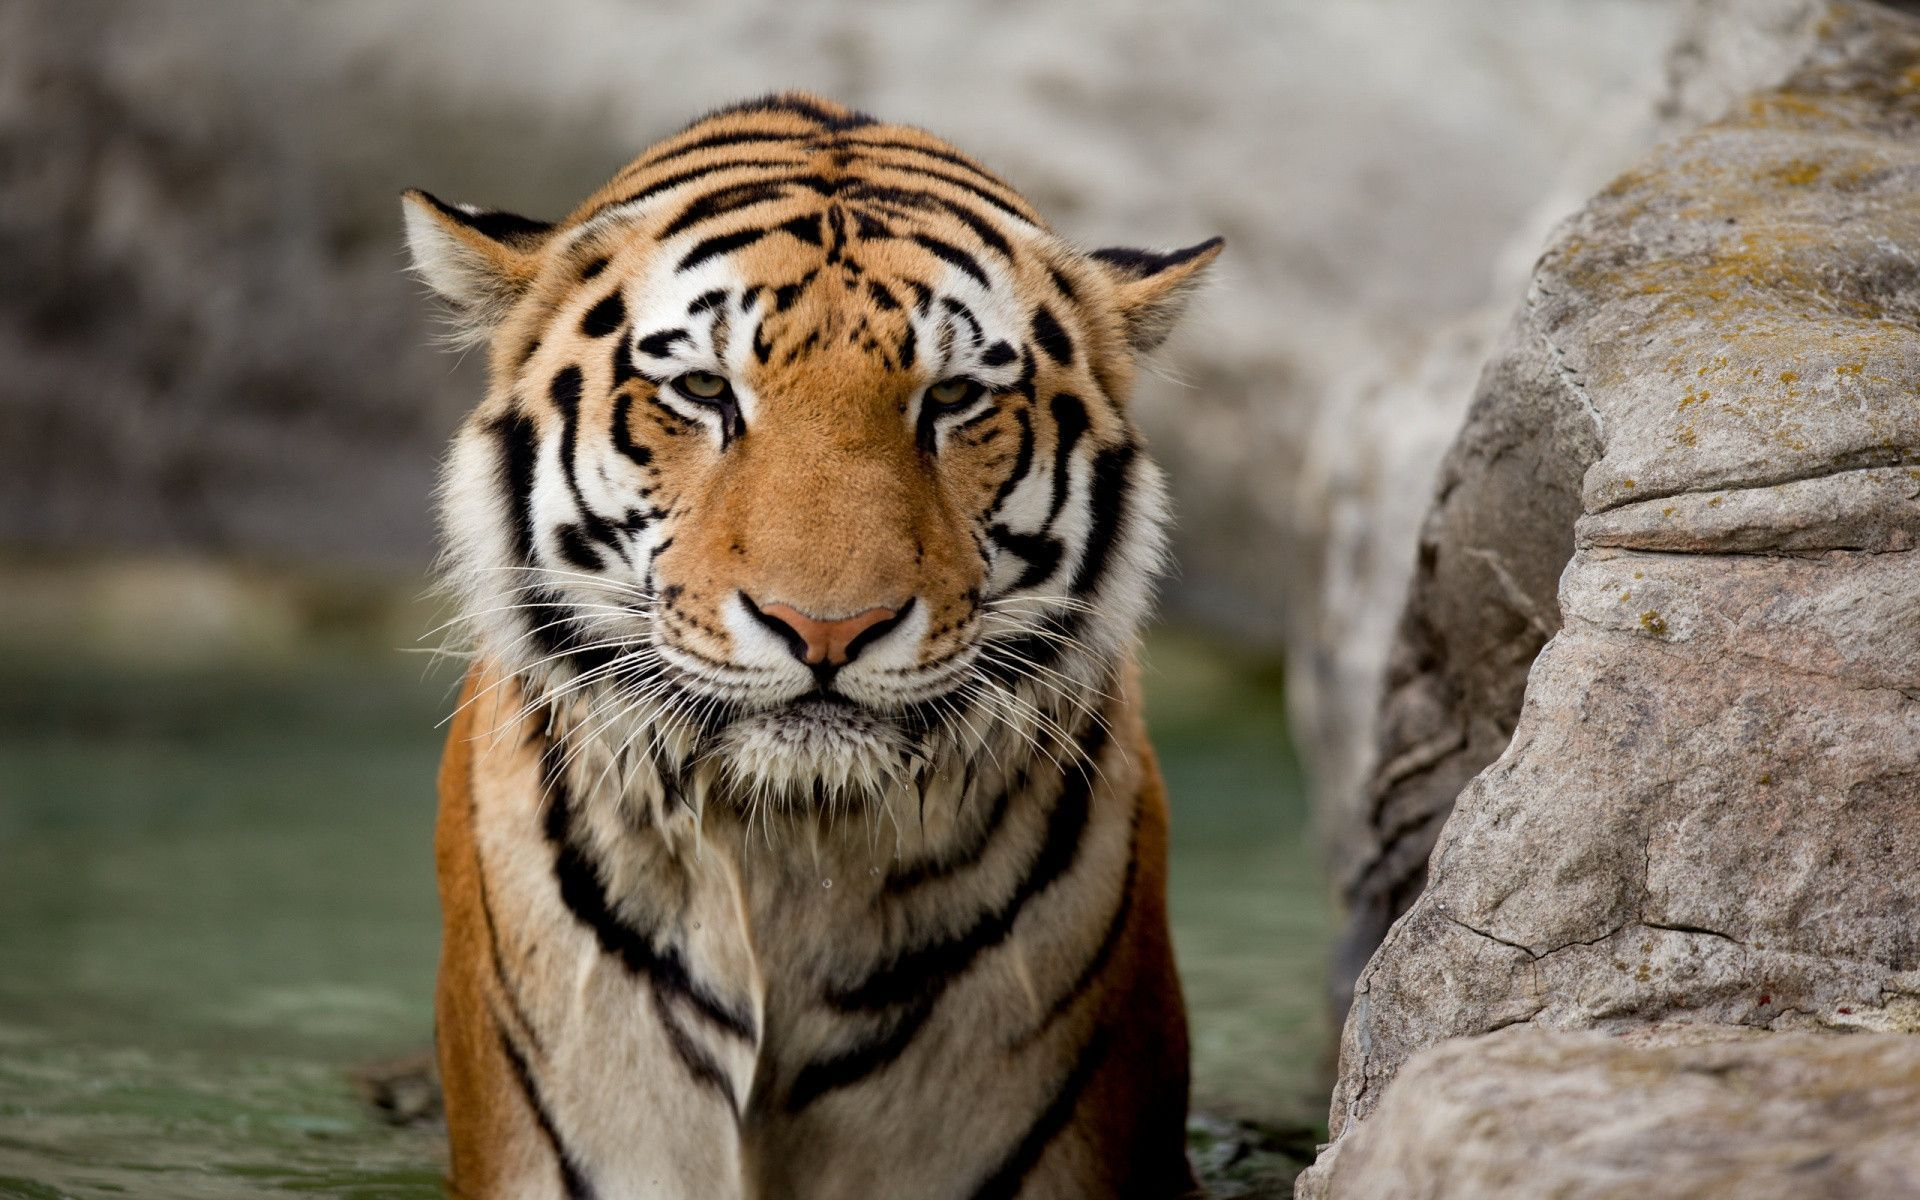 Hd Wallpaper Of Angry Tiger Tiger Day Tigers Pinterest Tiger